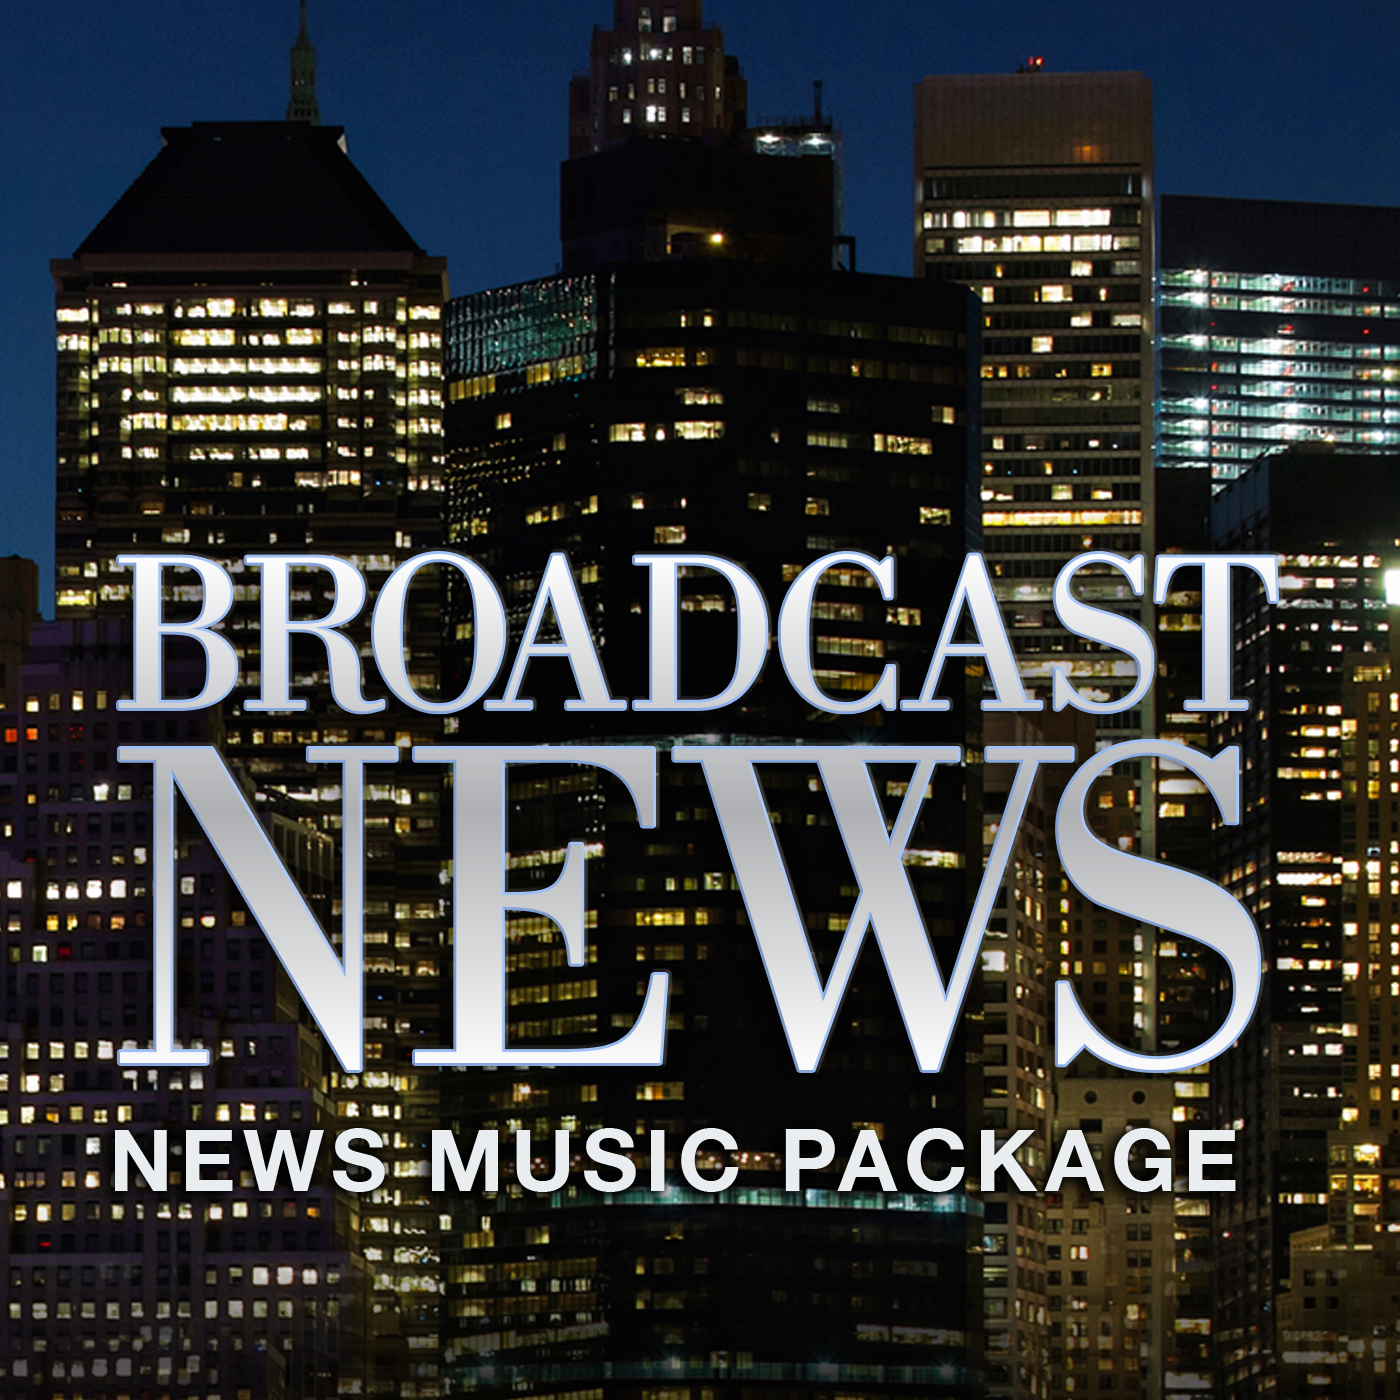 Broadcast News Music Package